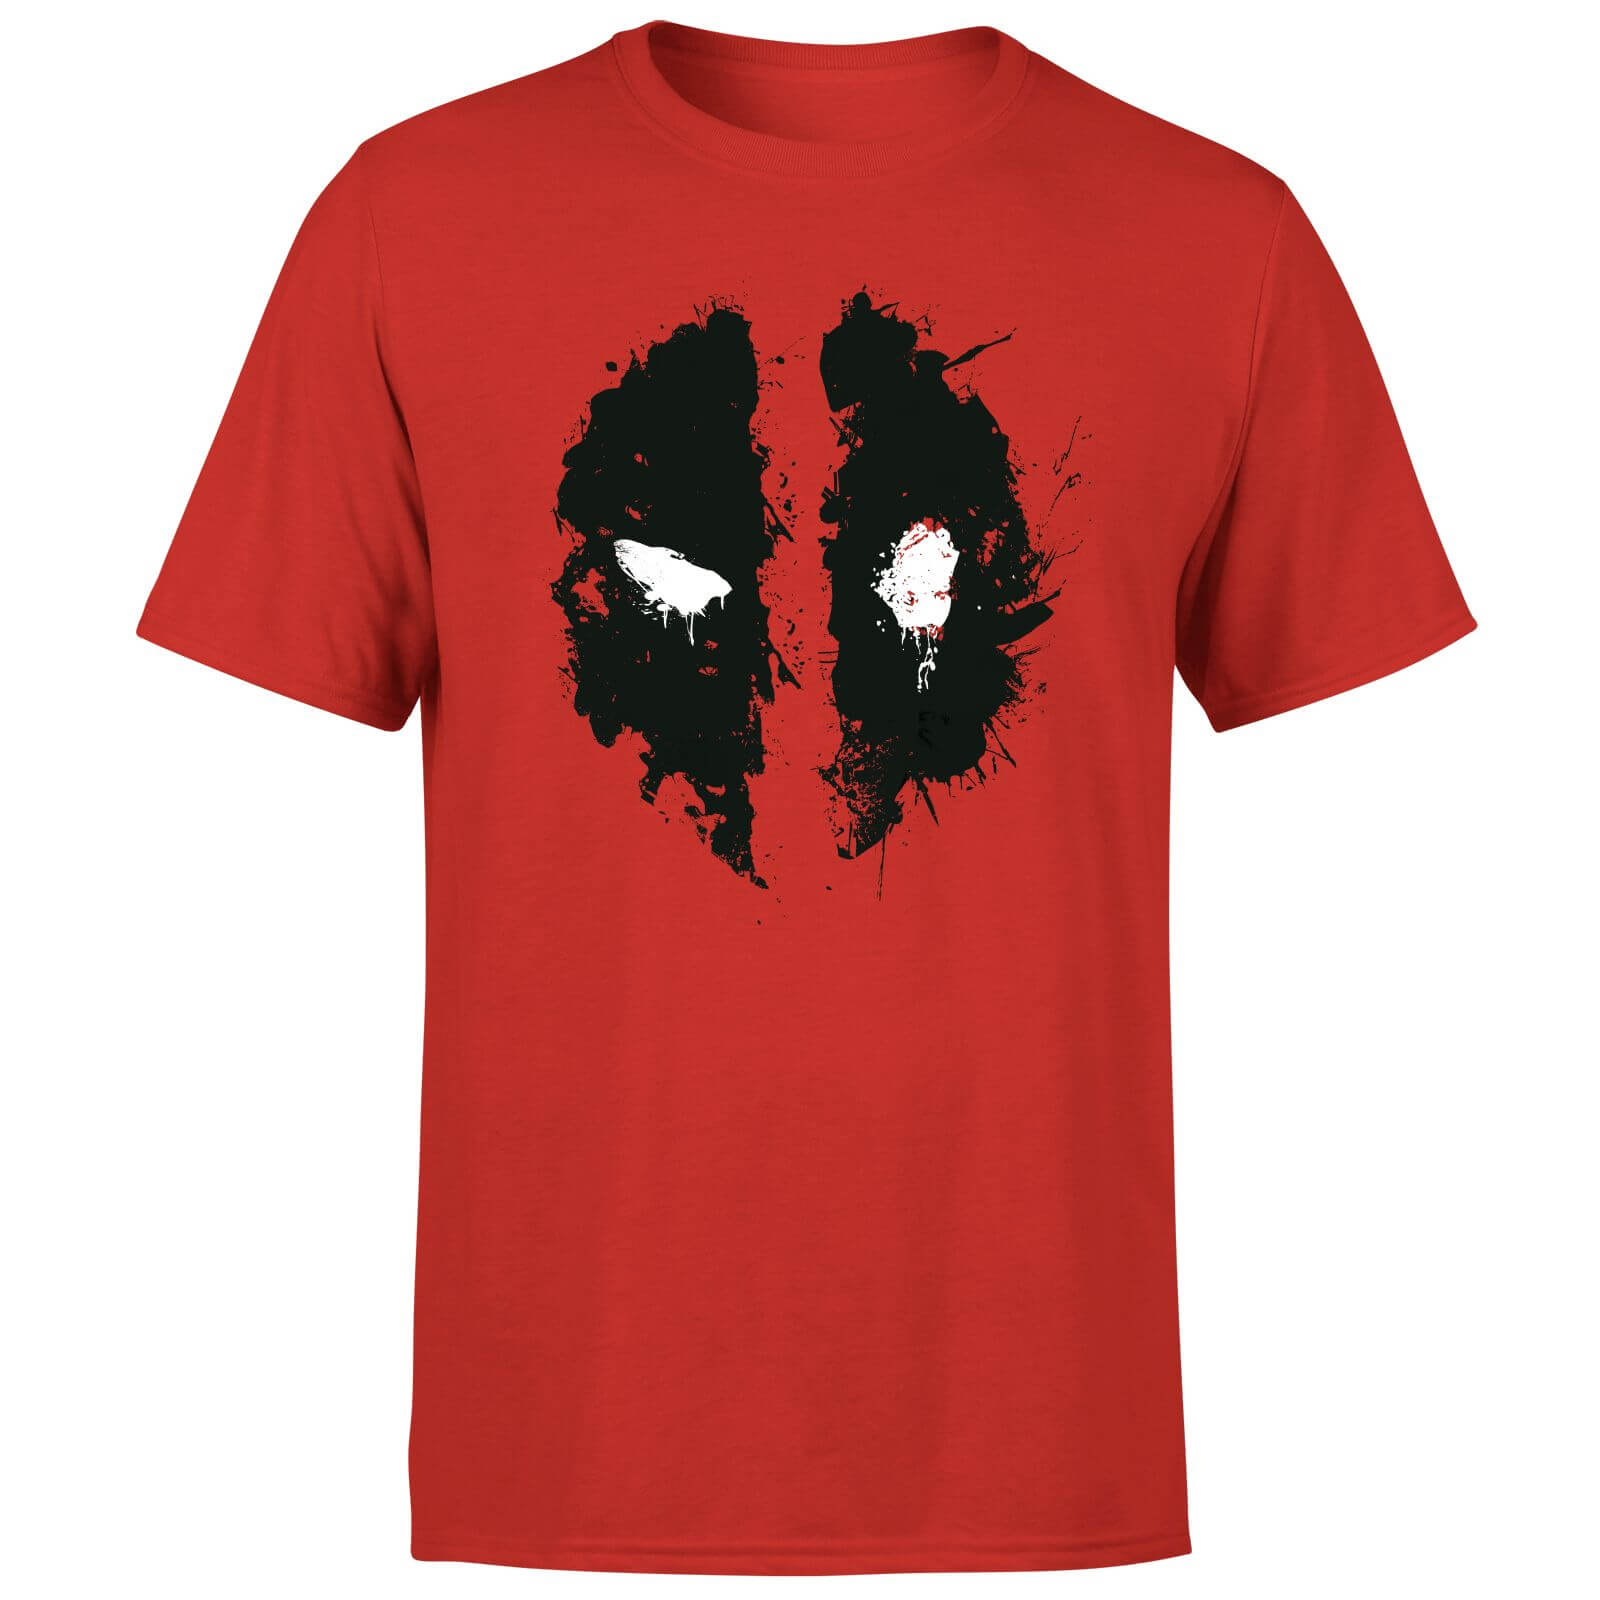 Marvel Deadpool Splat Face T-Shirt - Red